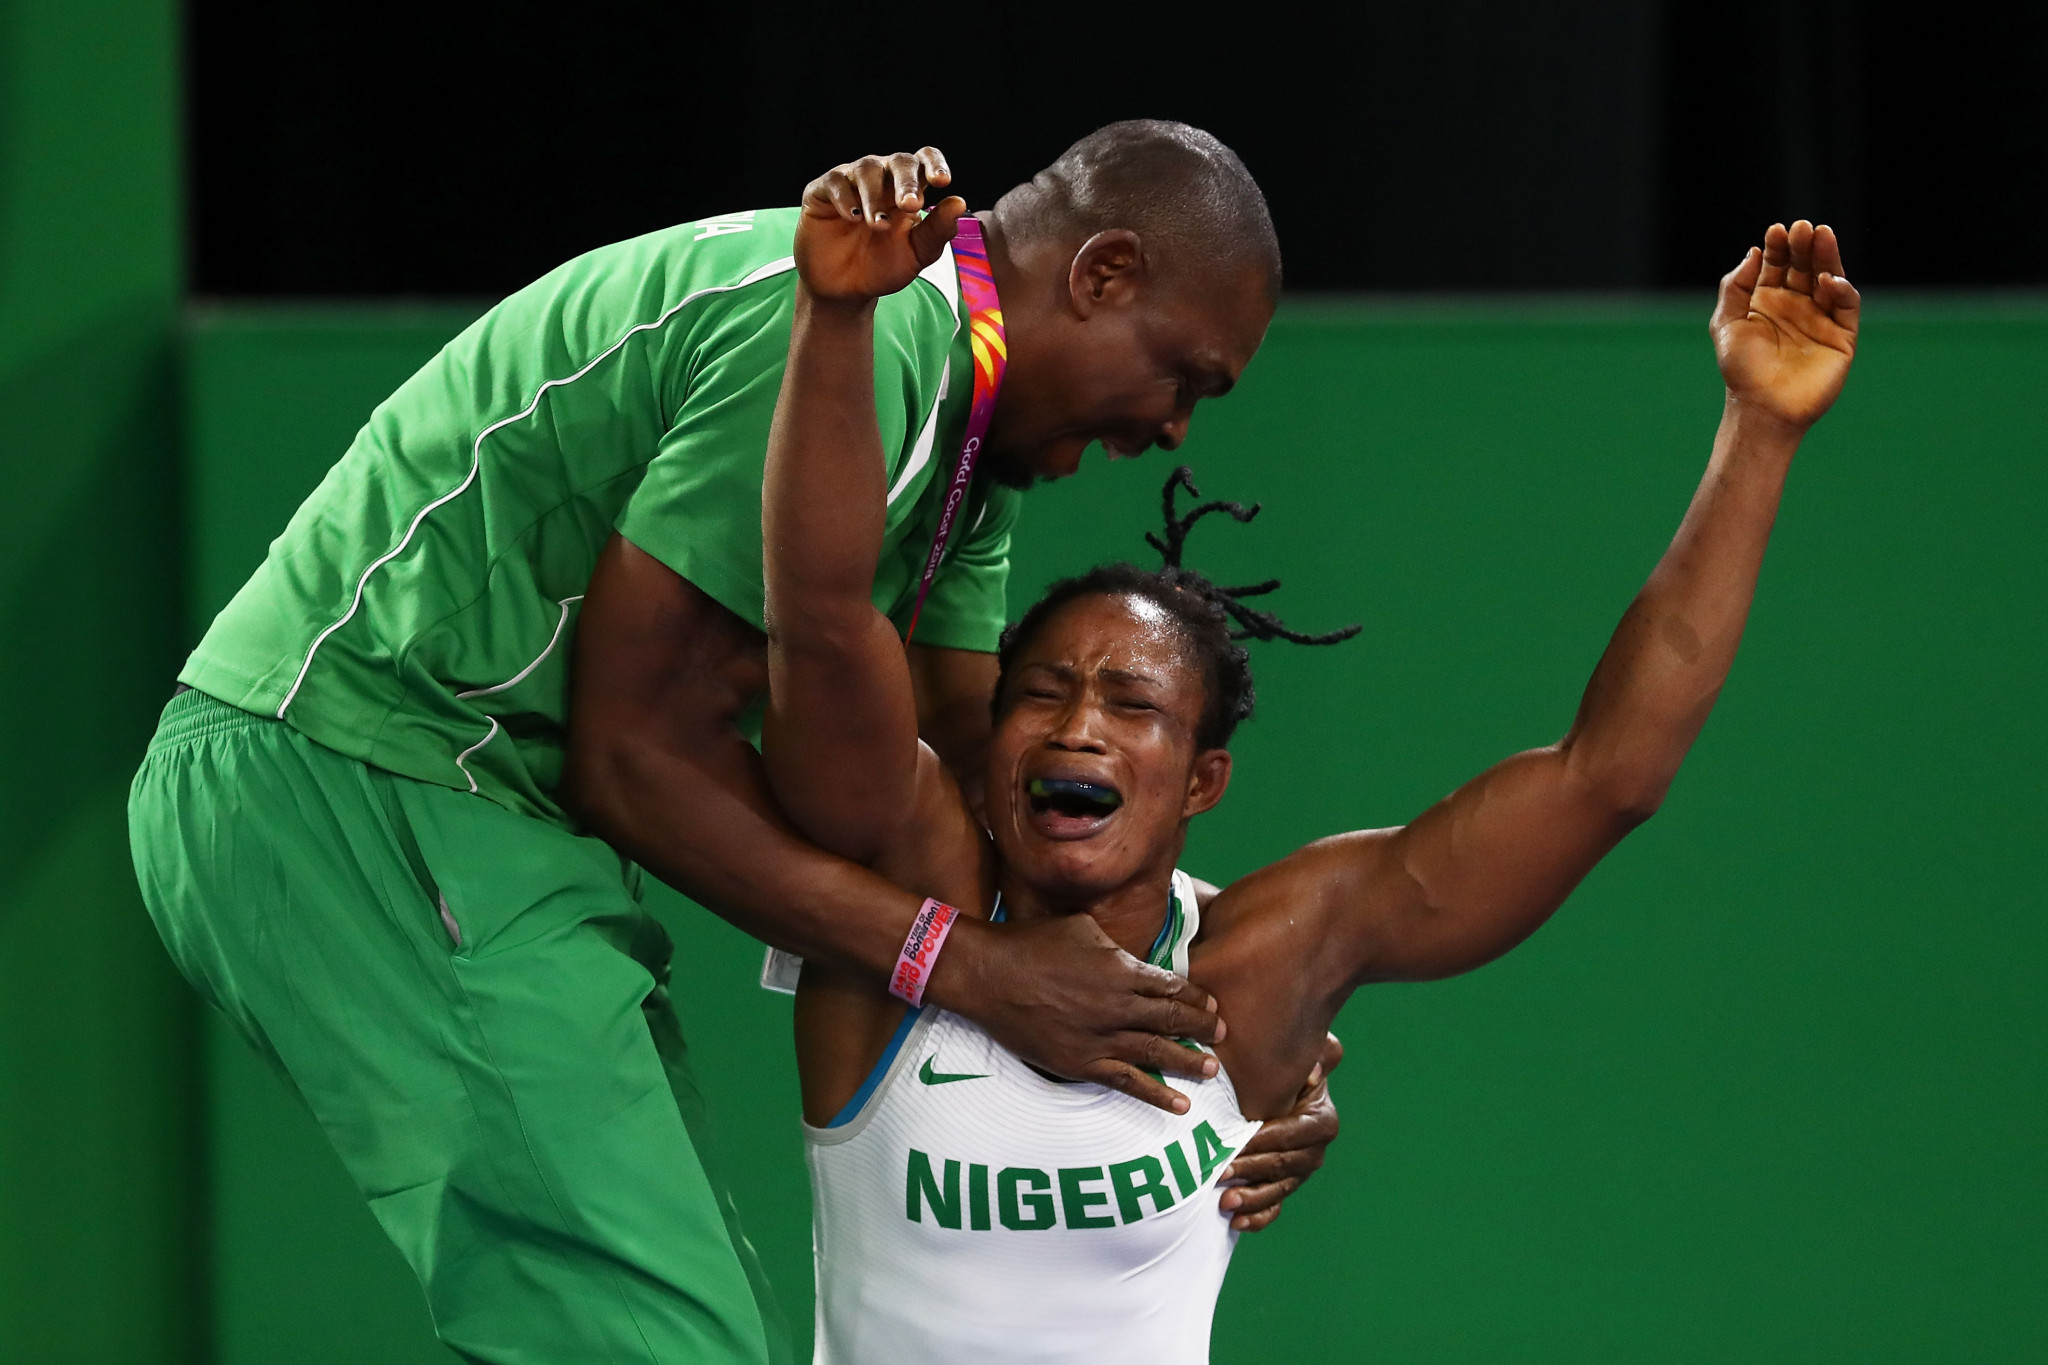 Nigeria shine in women's freestyle events on second day of wrestling action at Gold Coast 2018